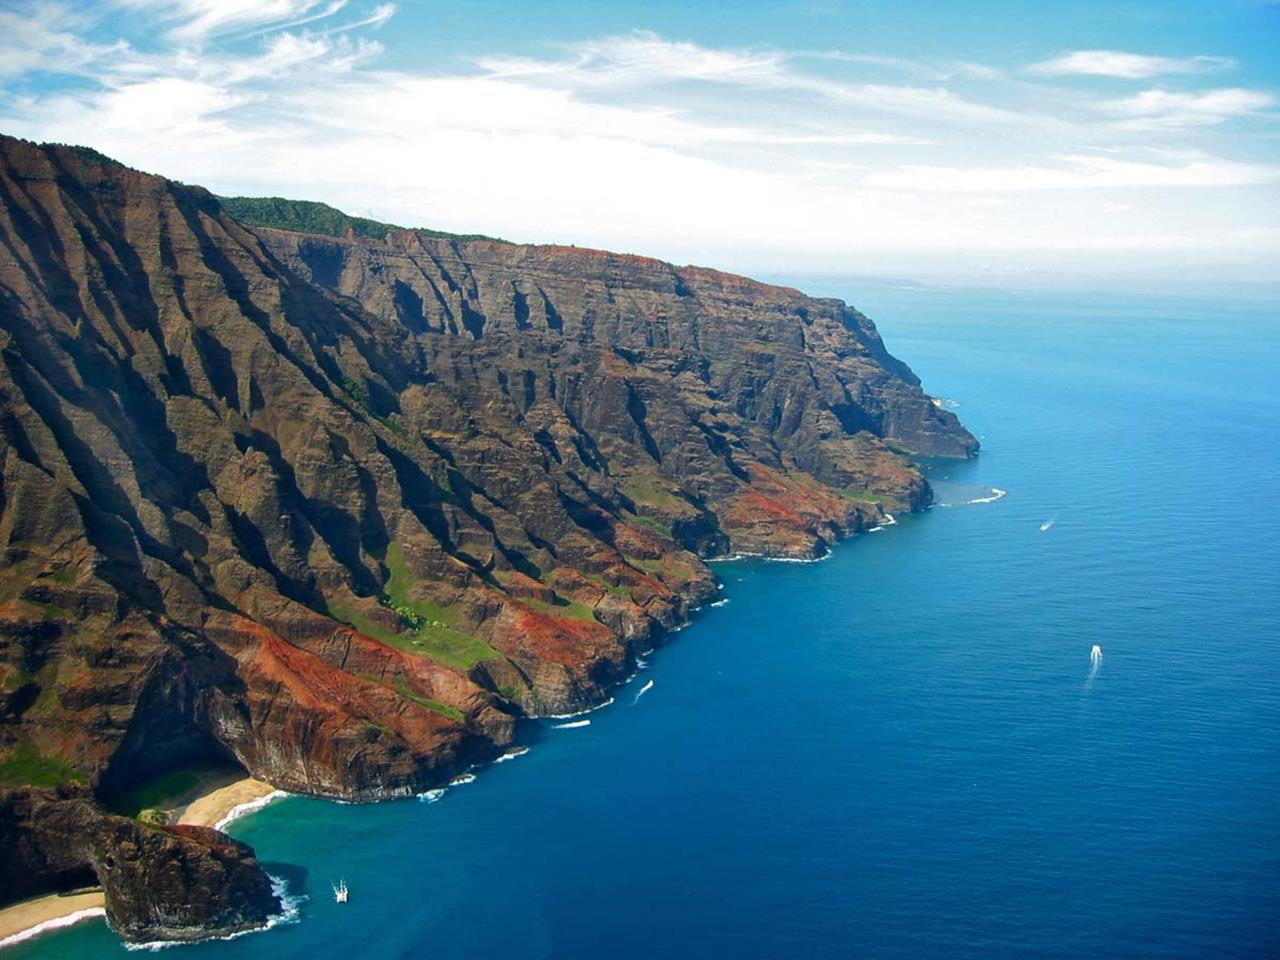 Cute Cool Wallpapers For Mobile Travel Guide Na Pali Coast State Park Kauai Xcitefun Net